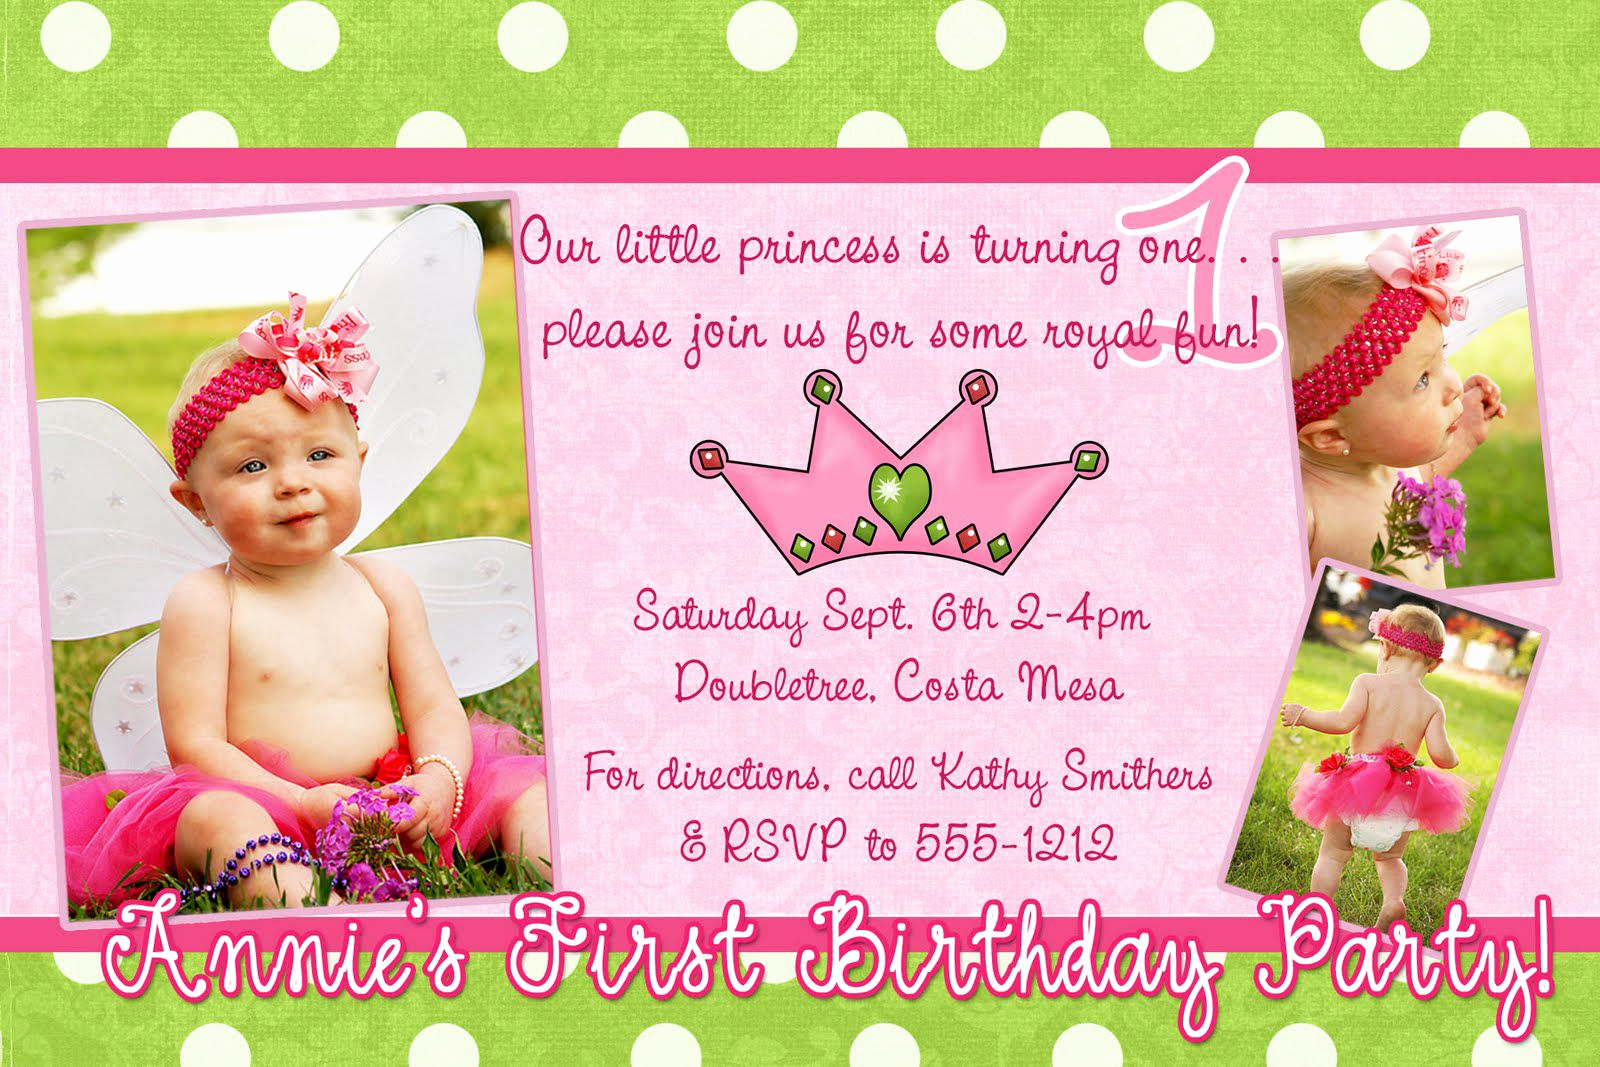 Sample Party Invitation Wording Inspirational 21 Kids Birthday Invitation Wording that We Can Make